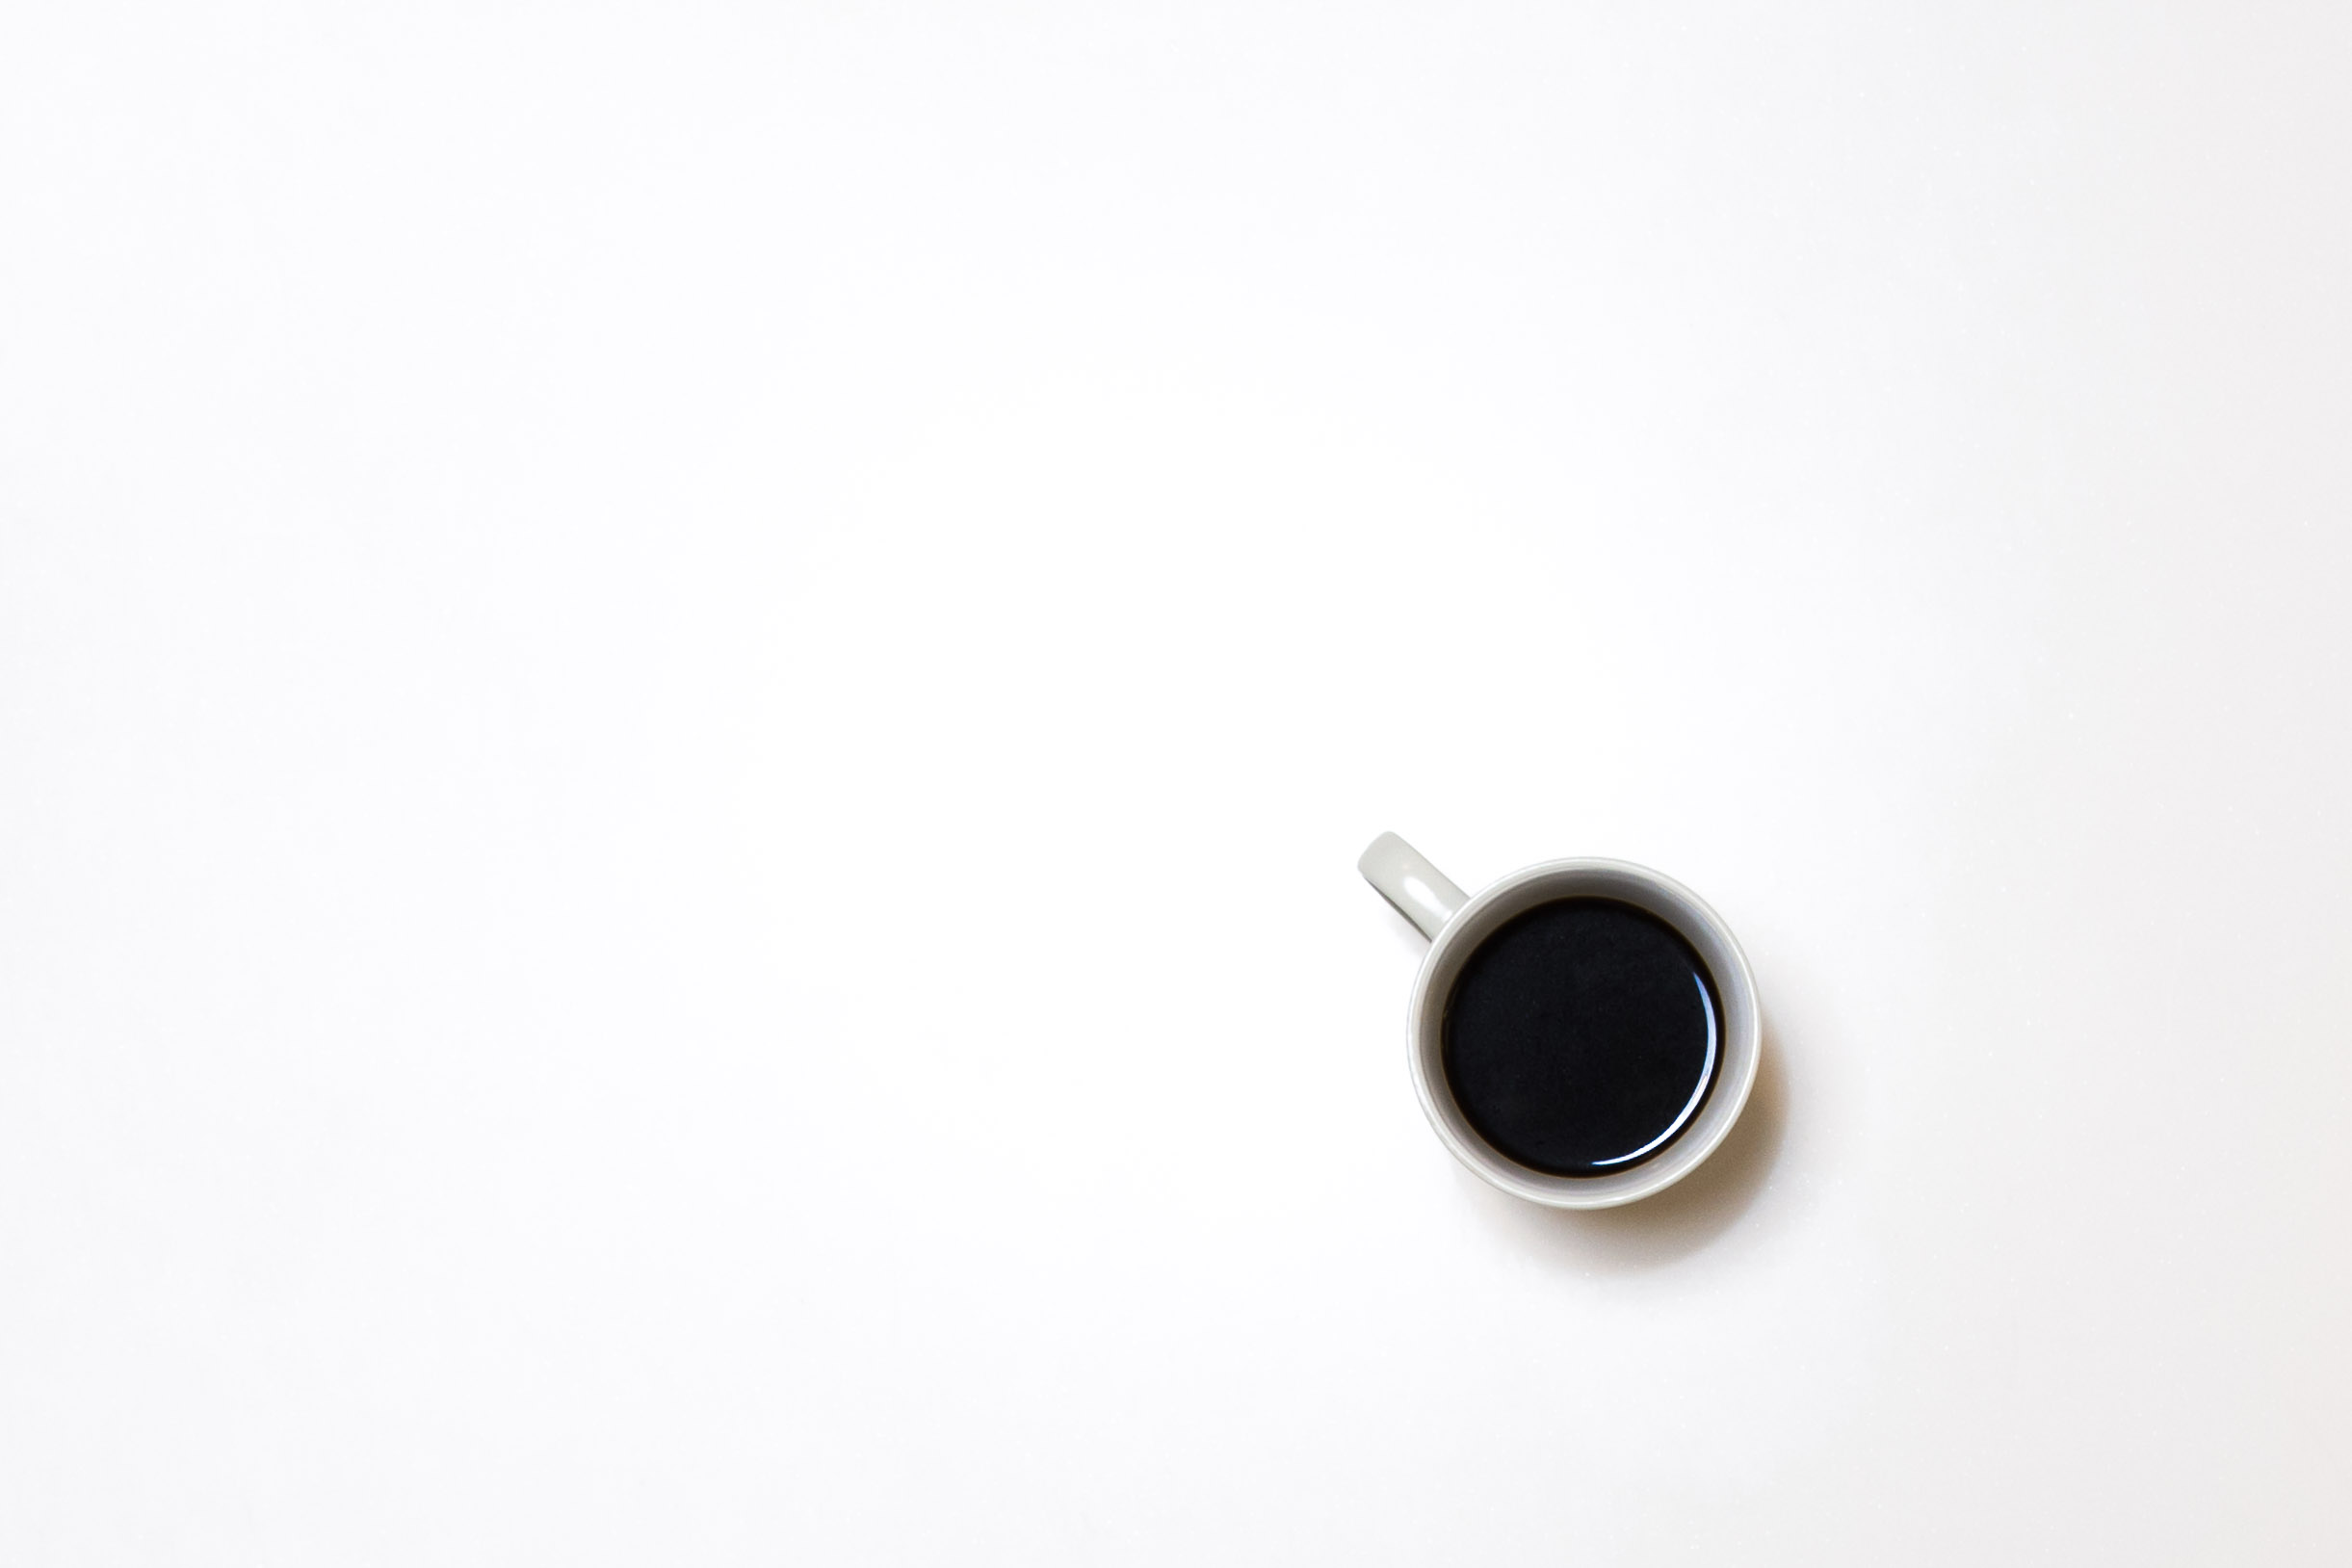 This Saturday, January 19, is Coffee With a Commissioner at the Levine Senior Center, 1050 Devore Ln., from 9 to 10 a.m. Stop by, ask some questions, chat about Matthews, and learn more about the goings on in our town. -